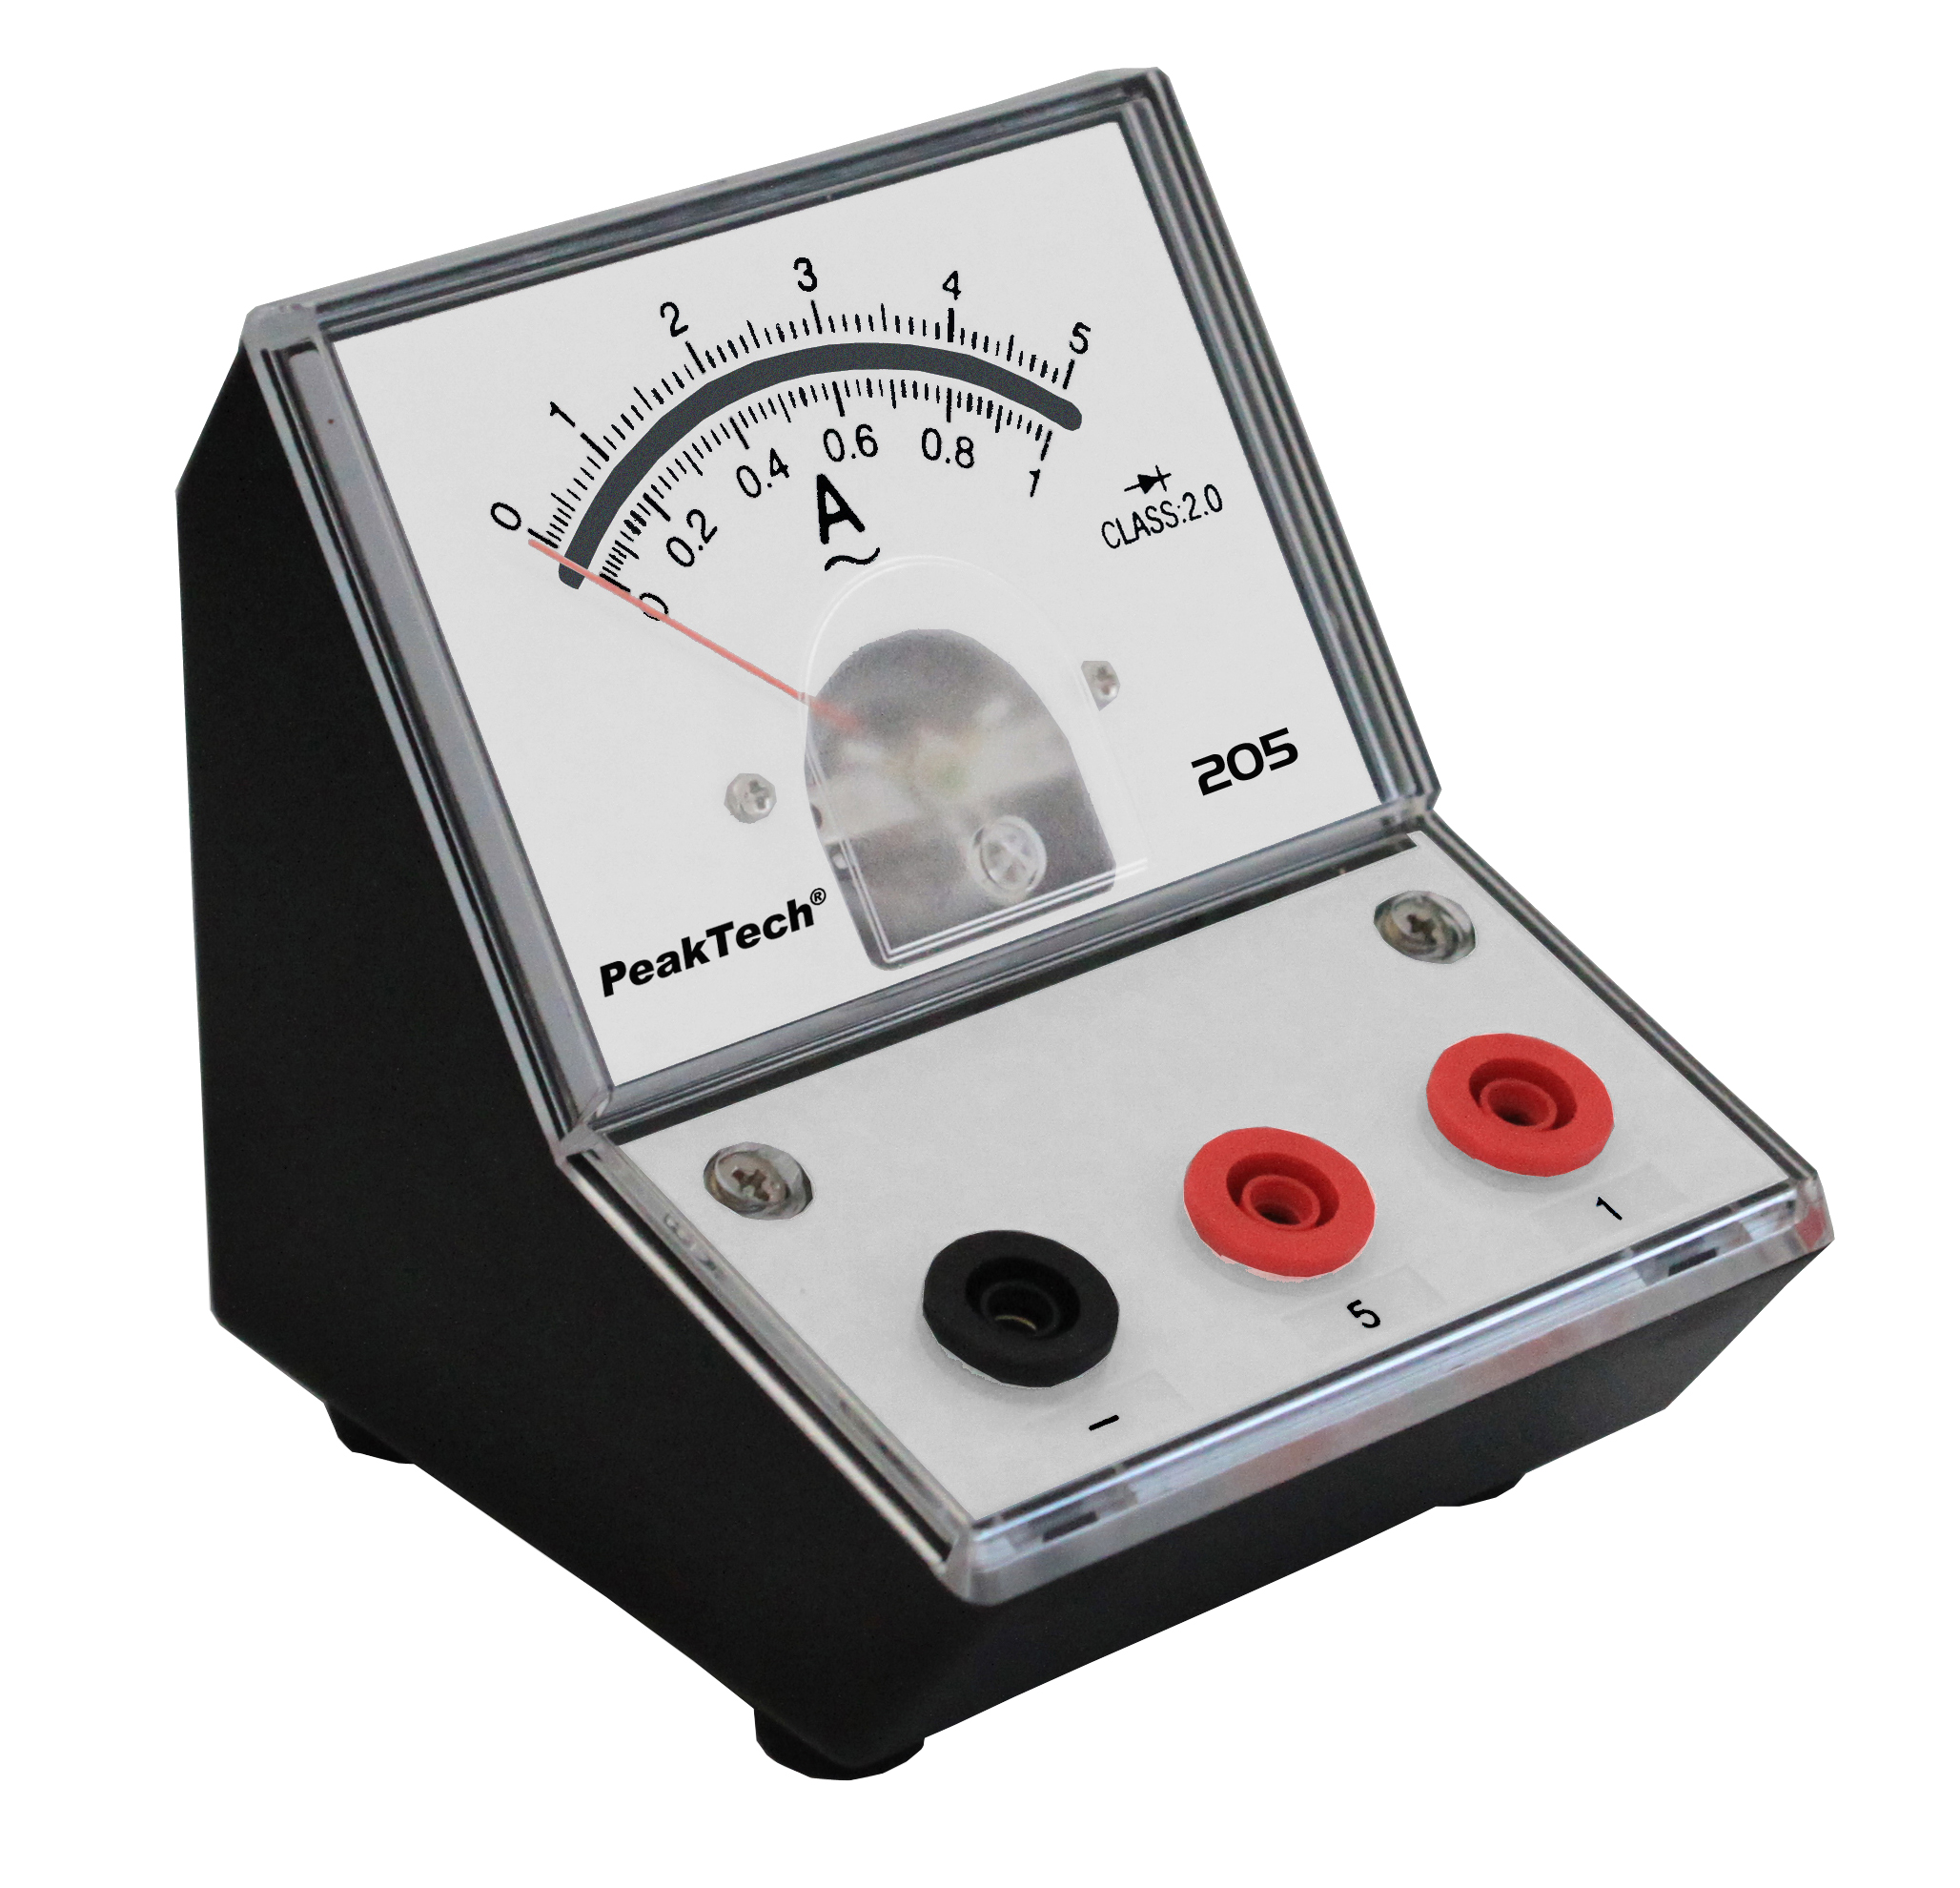 «PeakTech® P 205-09» Analog amperemeter - 0 ... 1A/5A AC